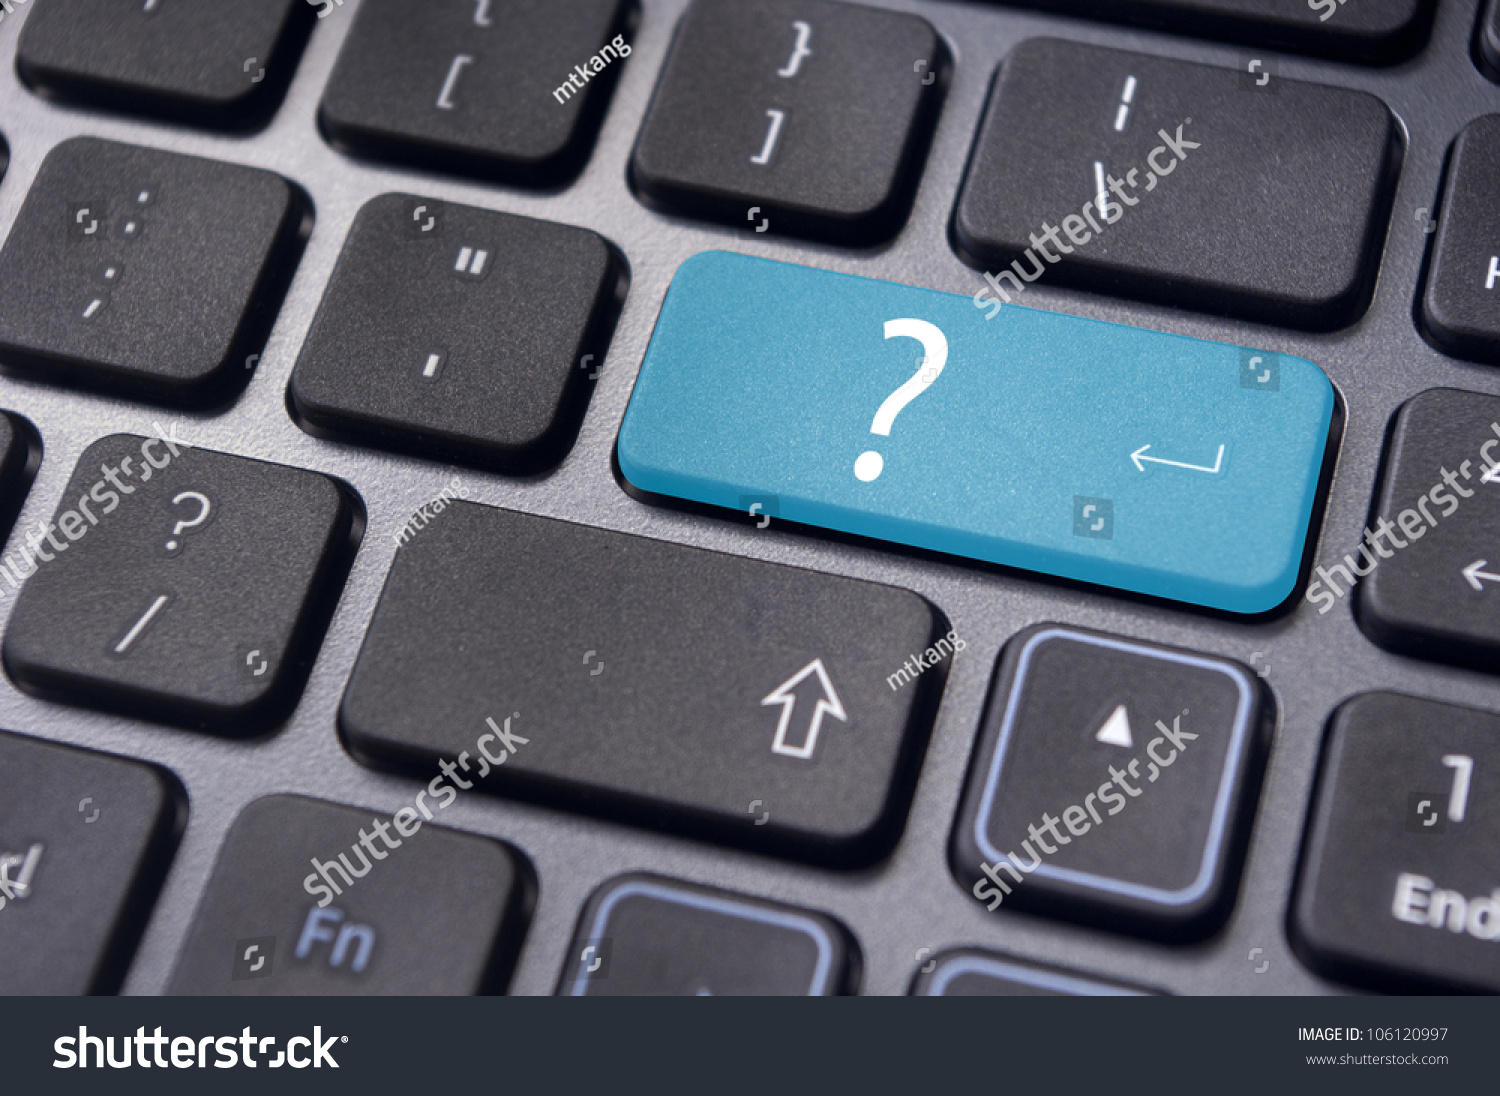 Concepts Questions Computer Errors Malfunction Alert Stock Photo